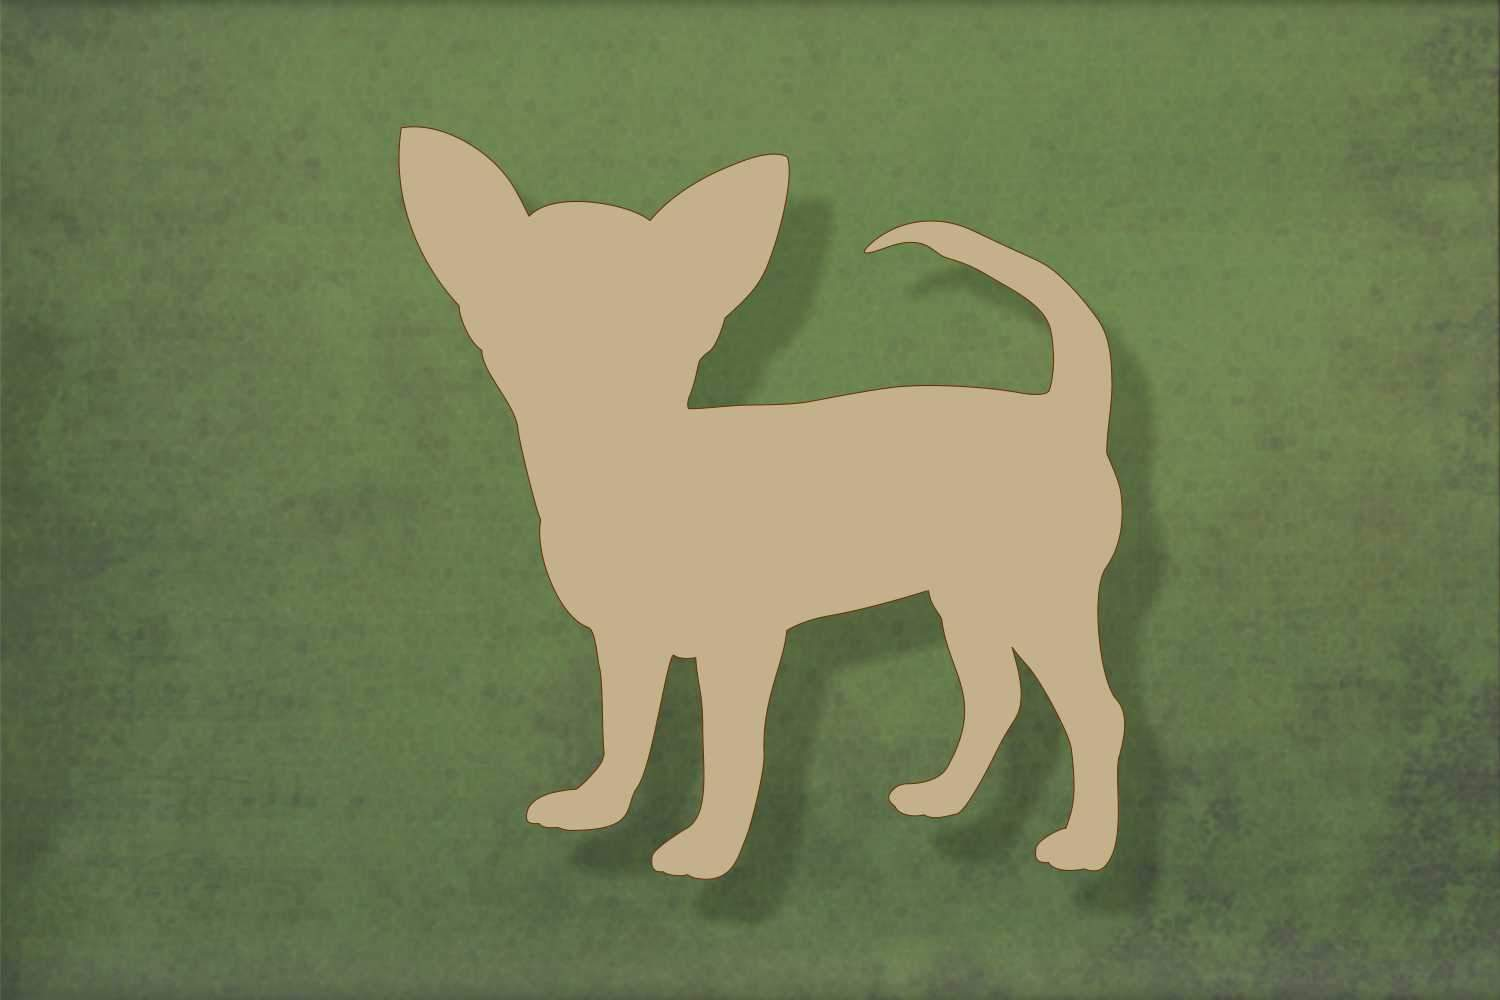 Laser cut, blank wooden Chihuahua 2 with face to side shape for craft